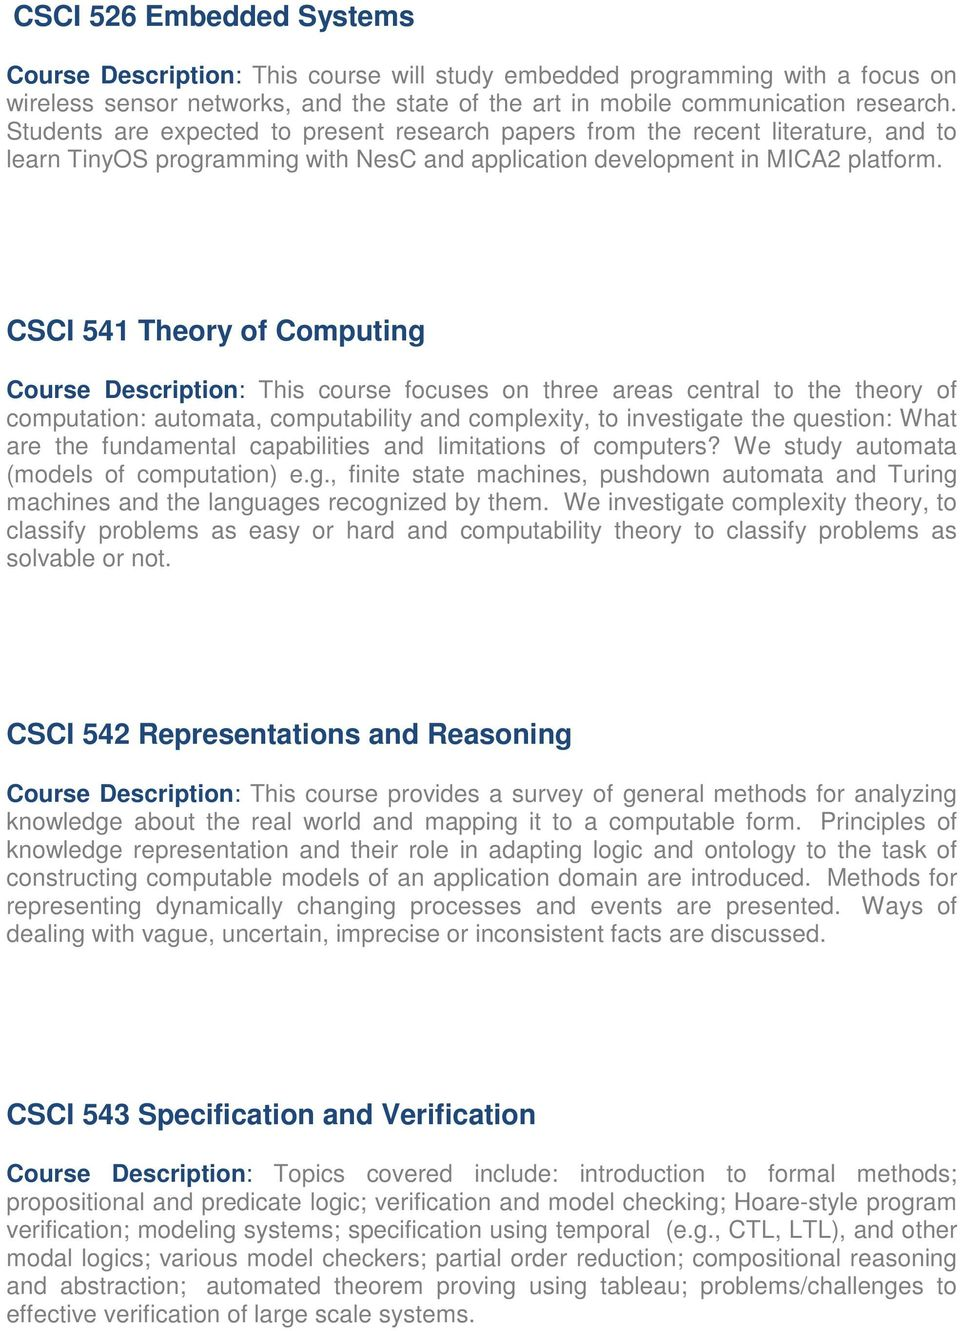 CSCI 541 Theory of Computing Course Description: This course focuses on three areas central to the theory of computation: automata, computability and complexity, to investigate the question: What are